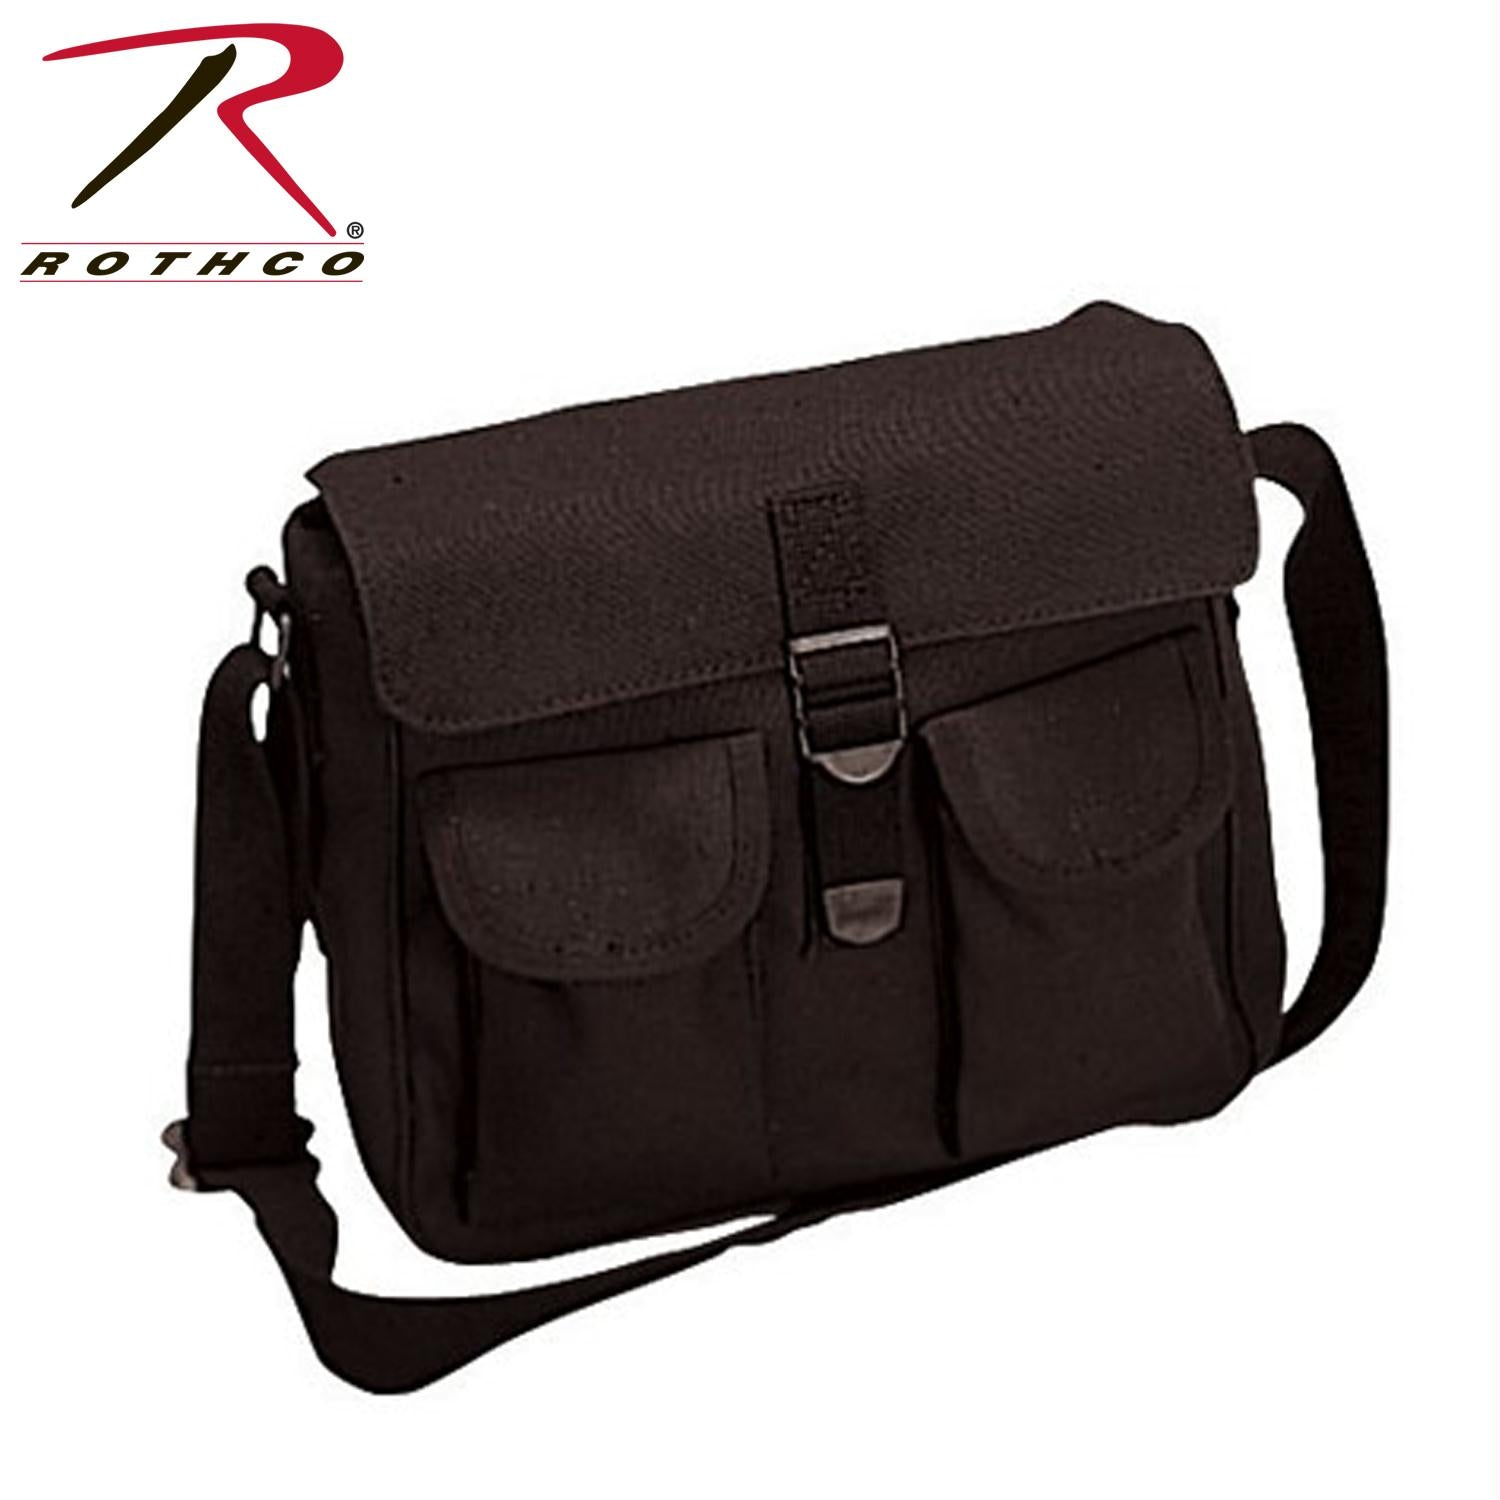 Rothco Canvas Ammo Shoulder Bag - Black